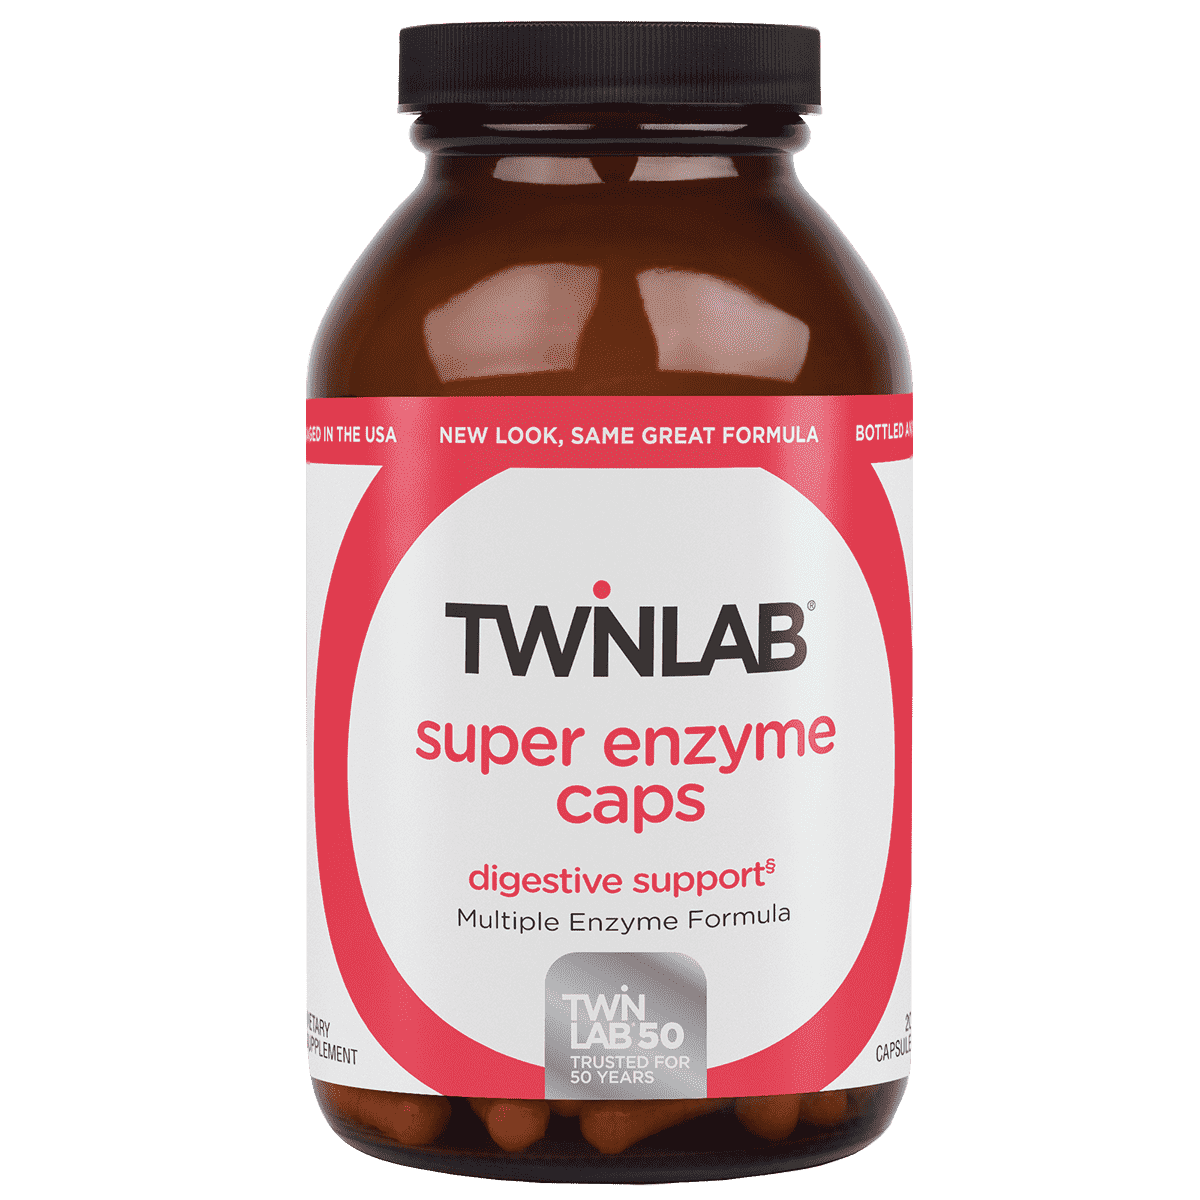 Twinlab® Super Enzyme Caps 200 Count have a selected blend of multi-enzymes that supports intestinal health and digestion